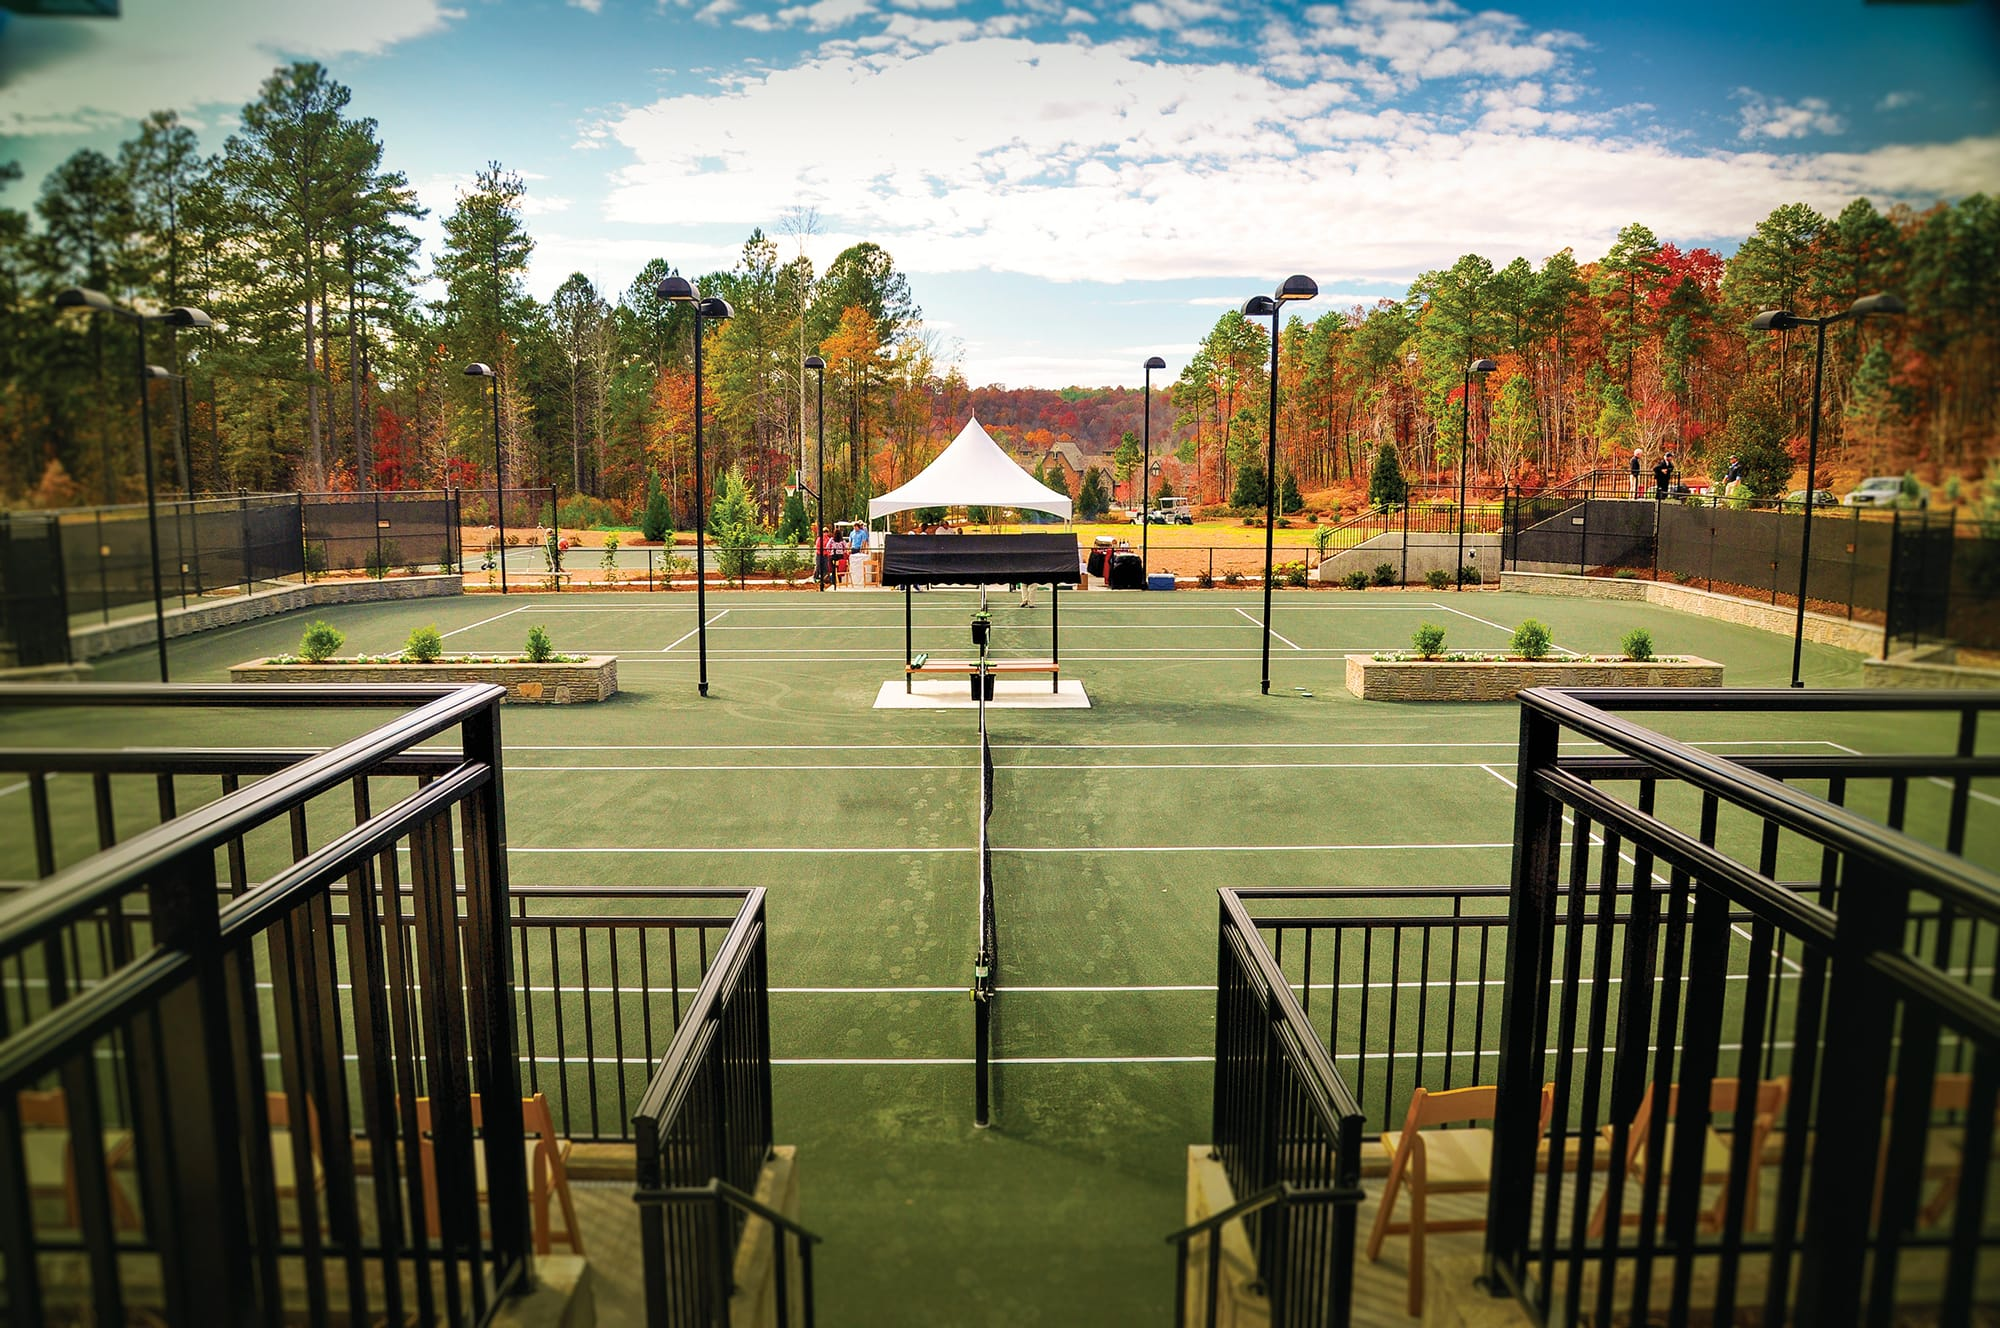 Tennis courts at Keowee Falls